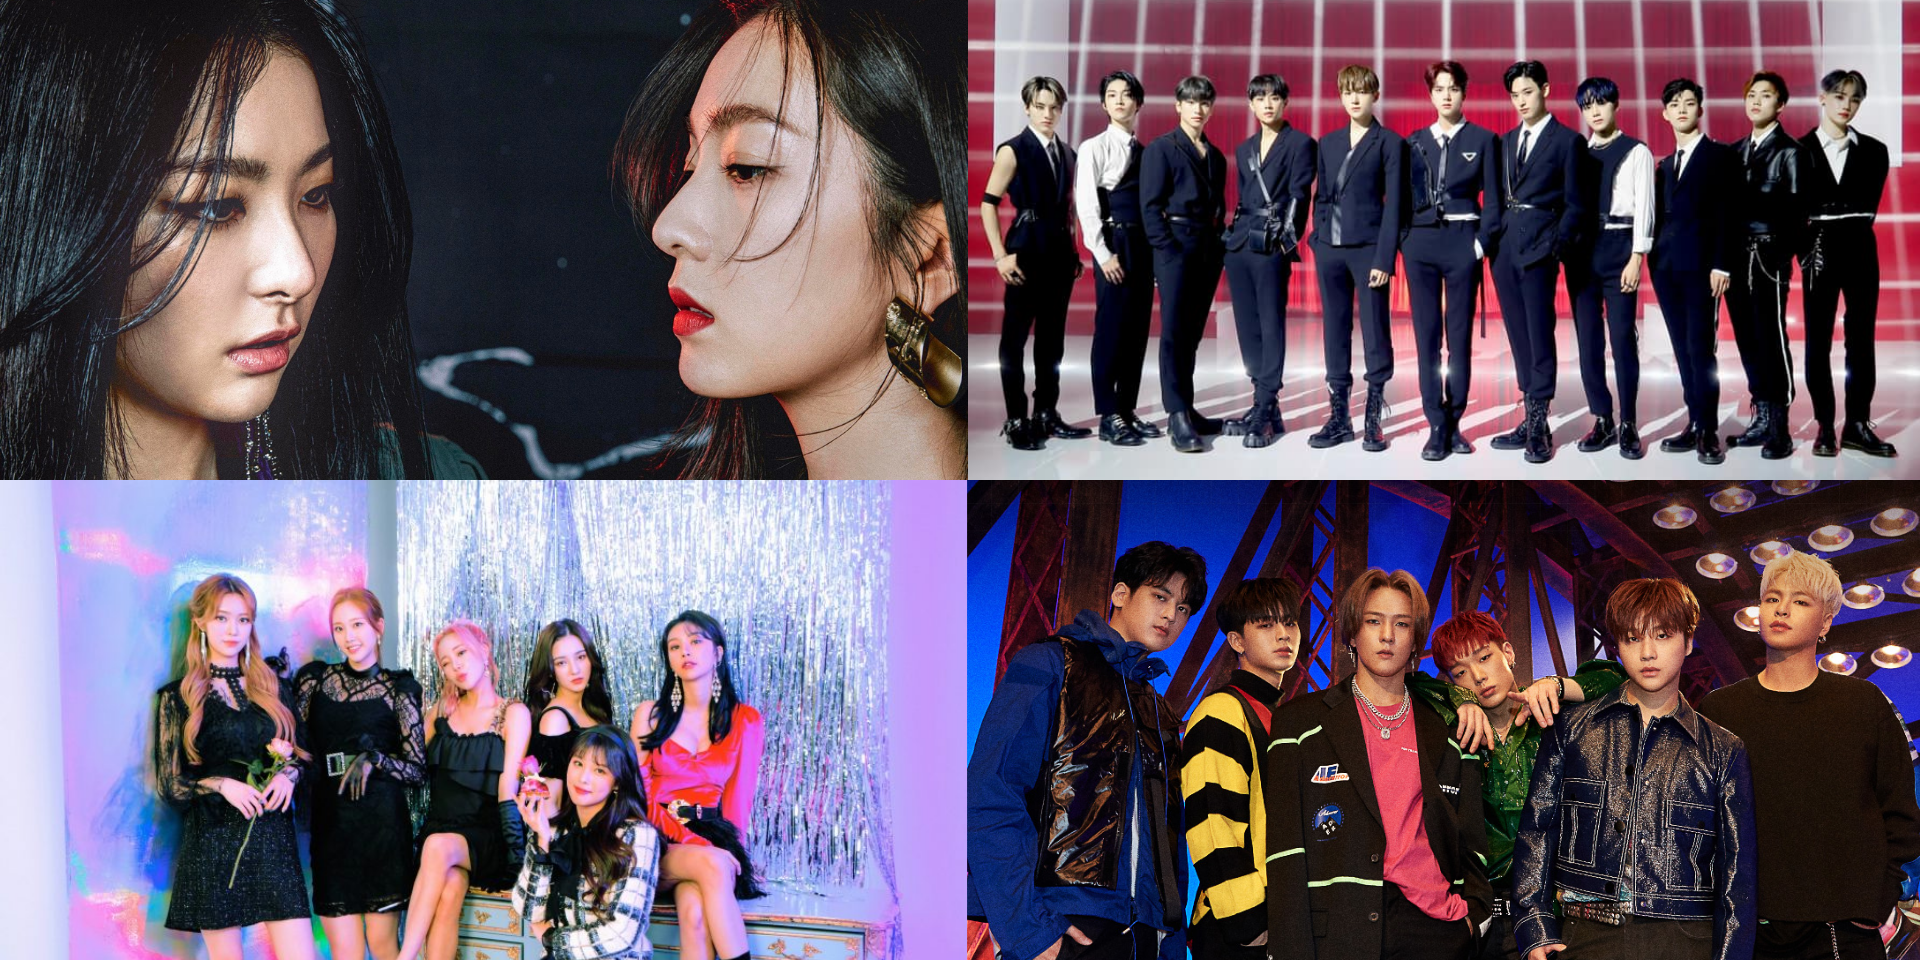 Red Velvet's Irene & Seulgi, MOMOLAND, iKON, The Boyz, and more to perform at 2020 Asia Song Festival